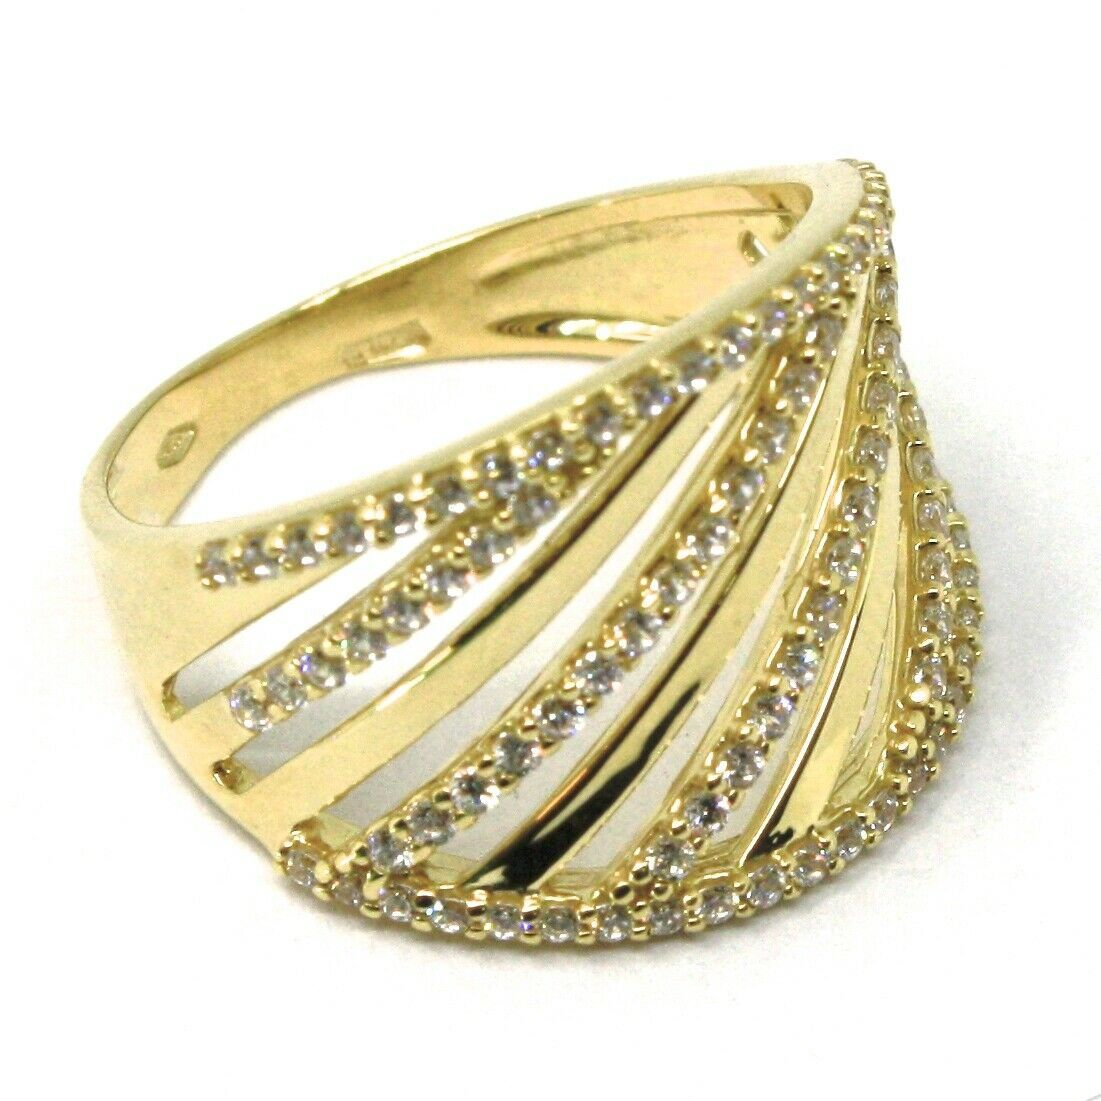 SOLID 18K YELLOW GOLD BAND RING, MULTI OBLIQUE WIRES, CUBIC ZIRCONIA